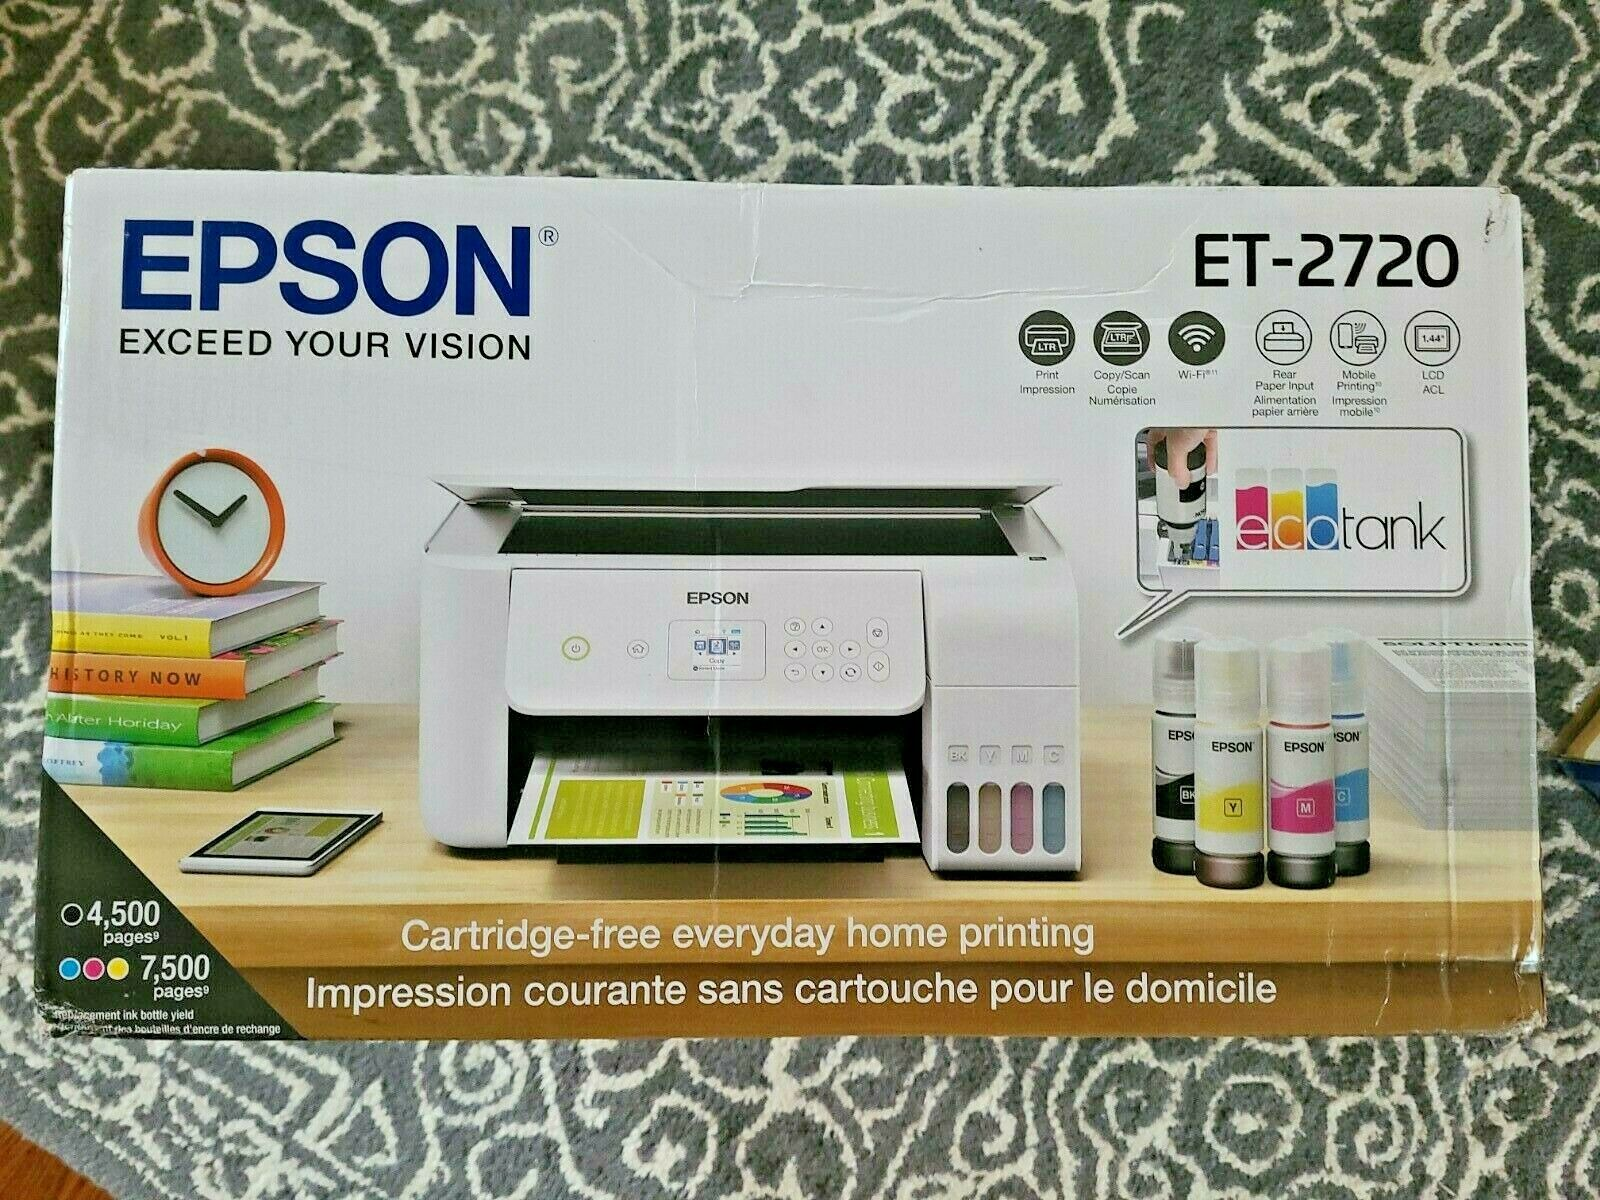 Brand New WHITE Epson ECOTANK ET-2720 WiFi All-In-One Color